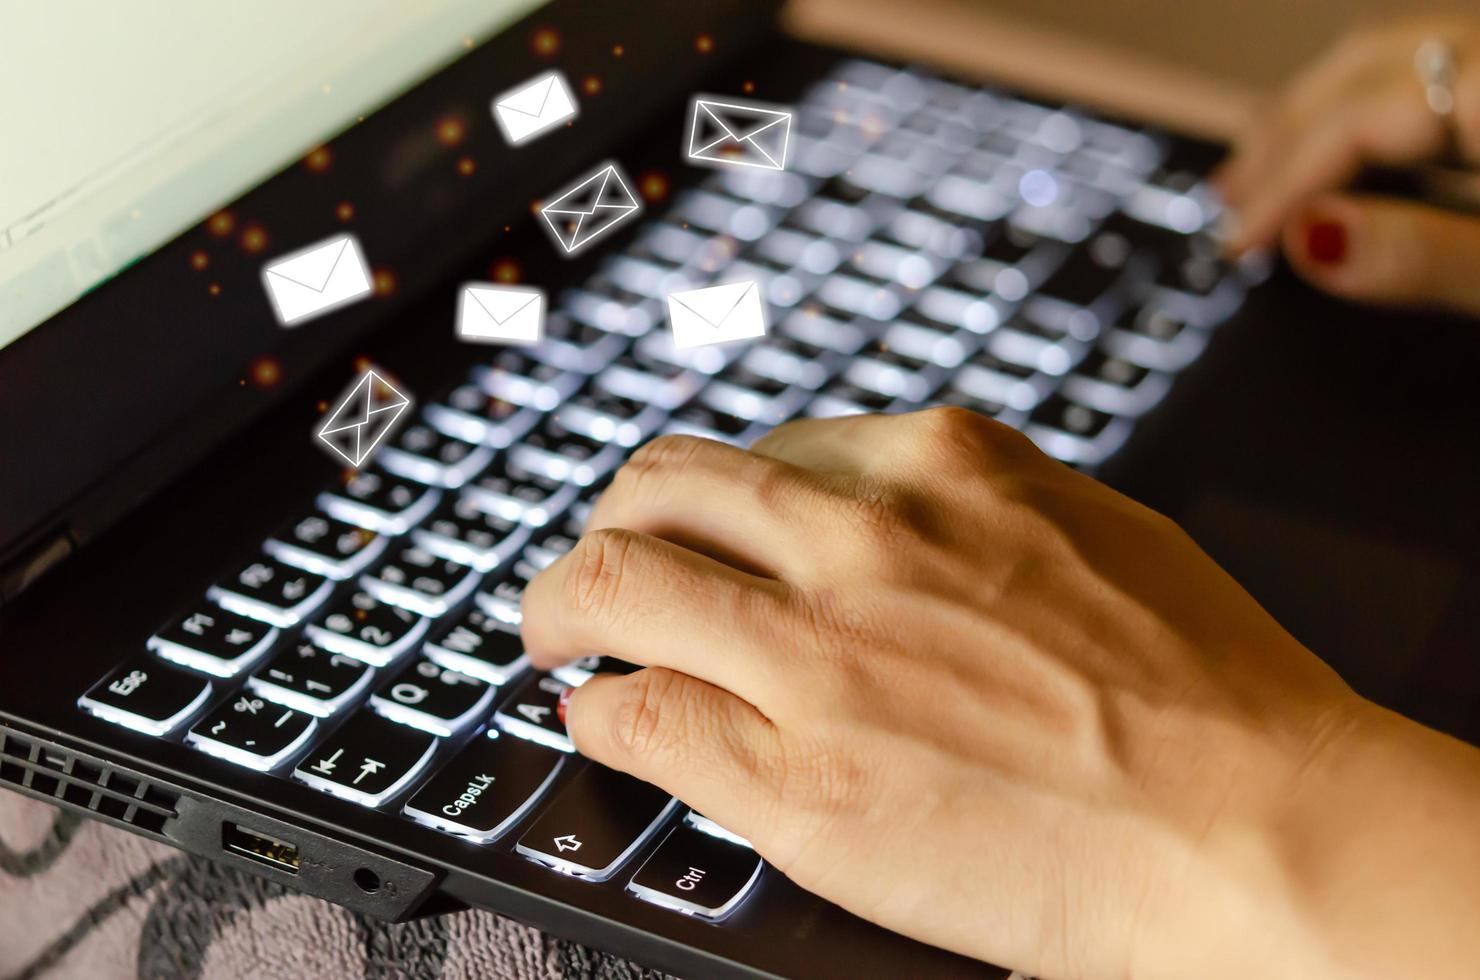 Typing on a keyboard with email icons photo